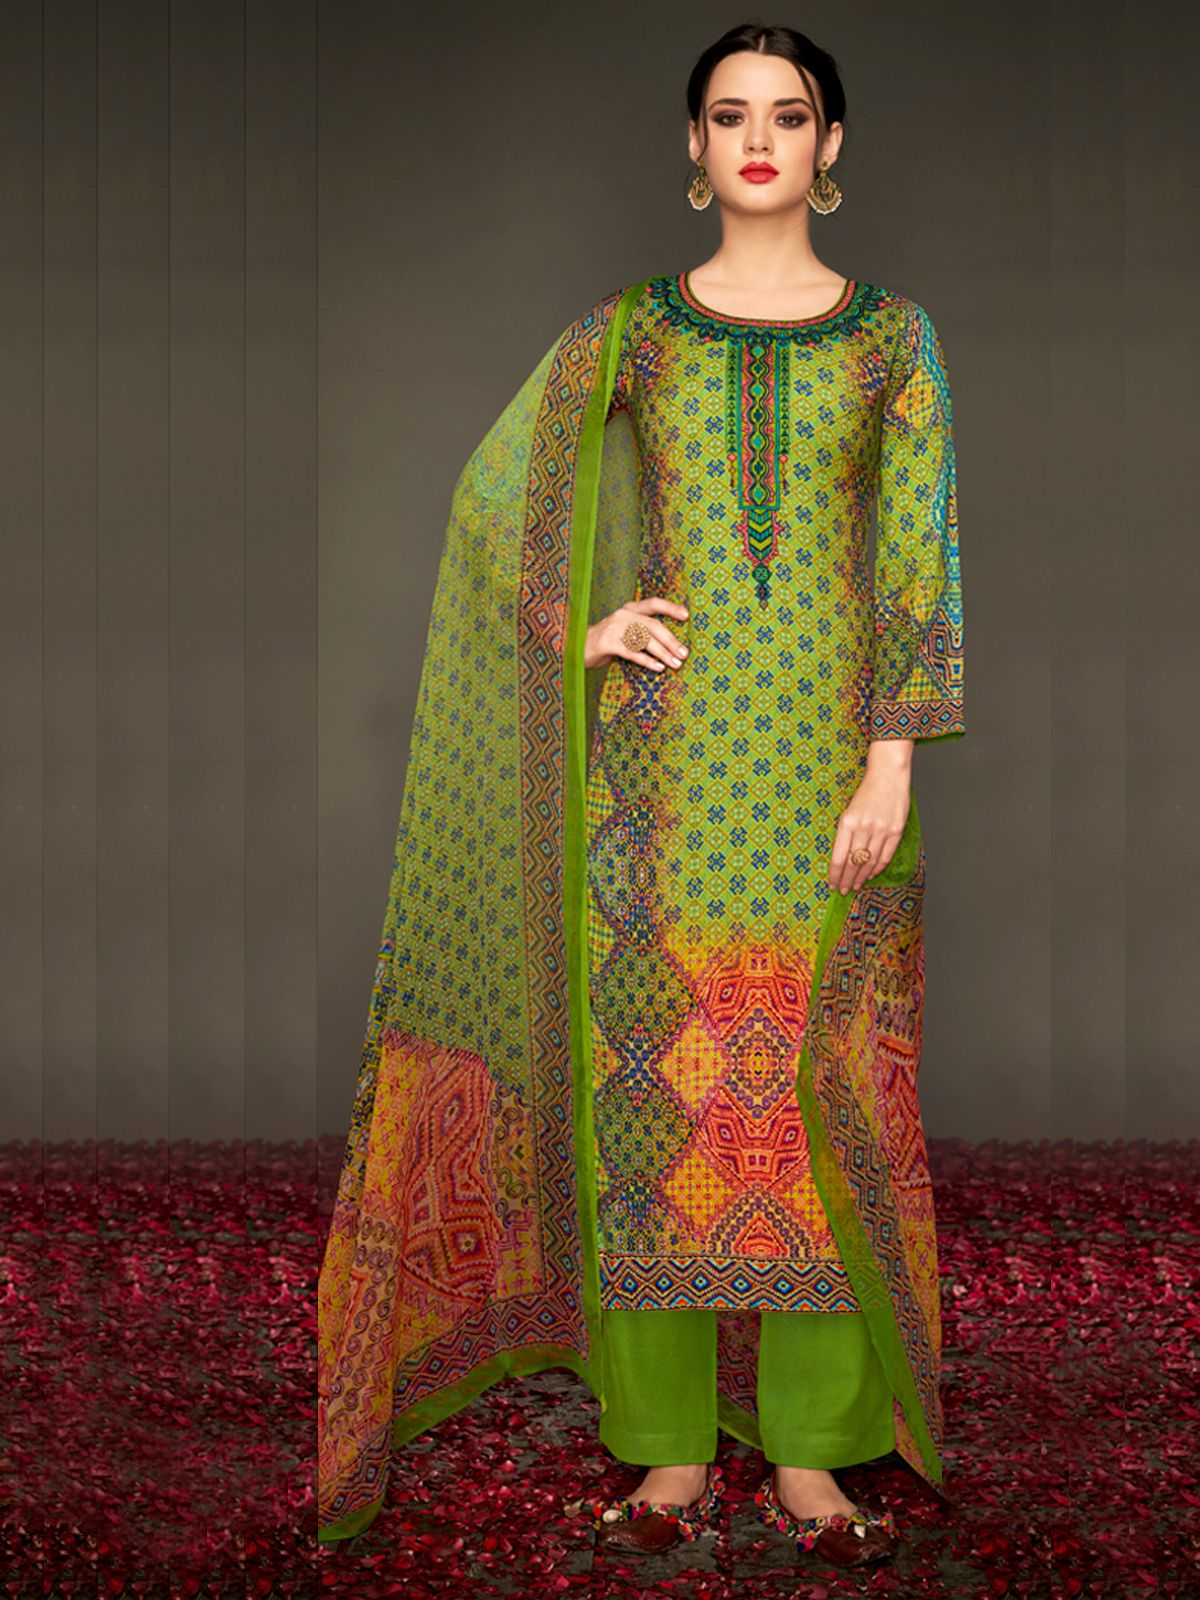 349b4341959 Blog – Shop the best pashmina suits online for winter wear collection from  Inddus.com. We offer the latest pashmina salwar kameez for casual